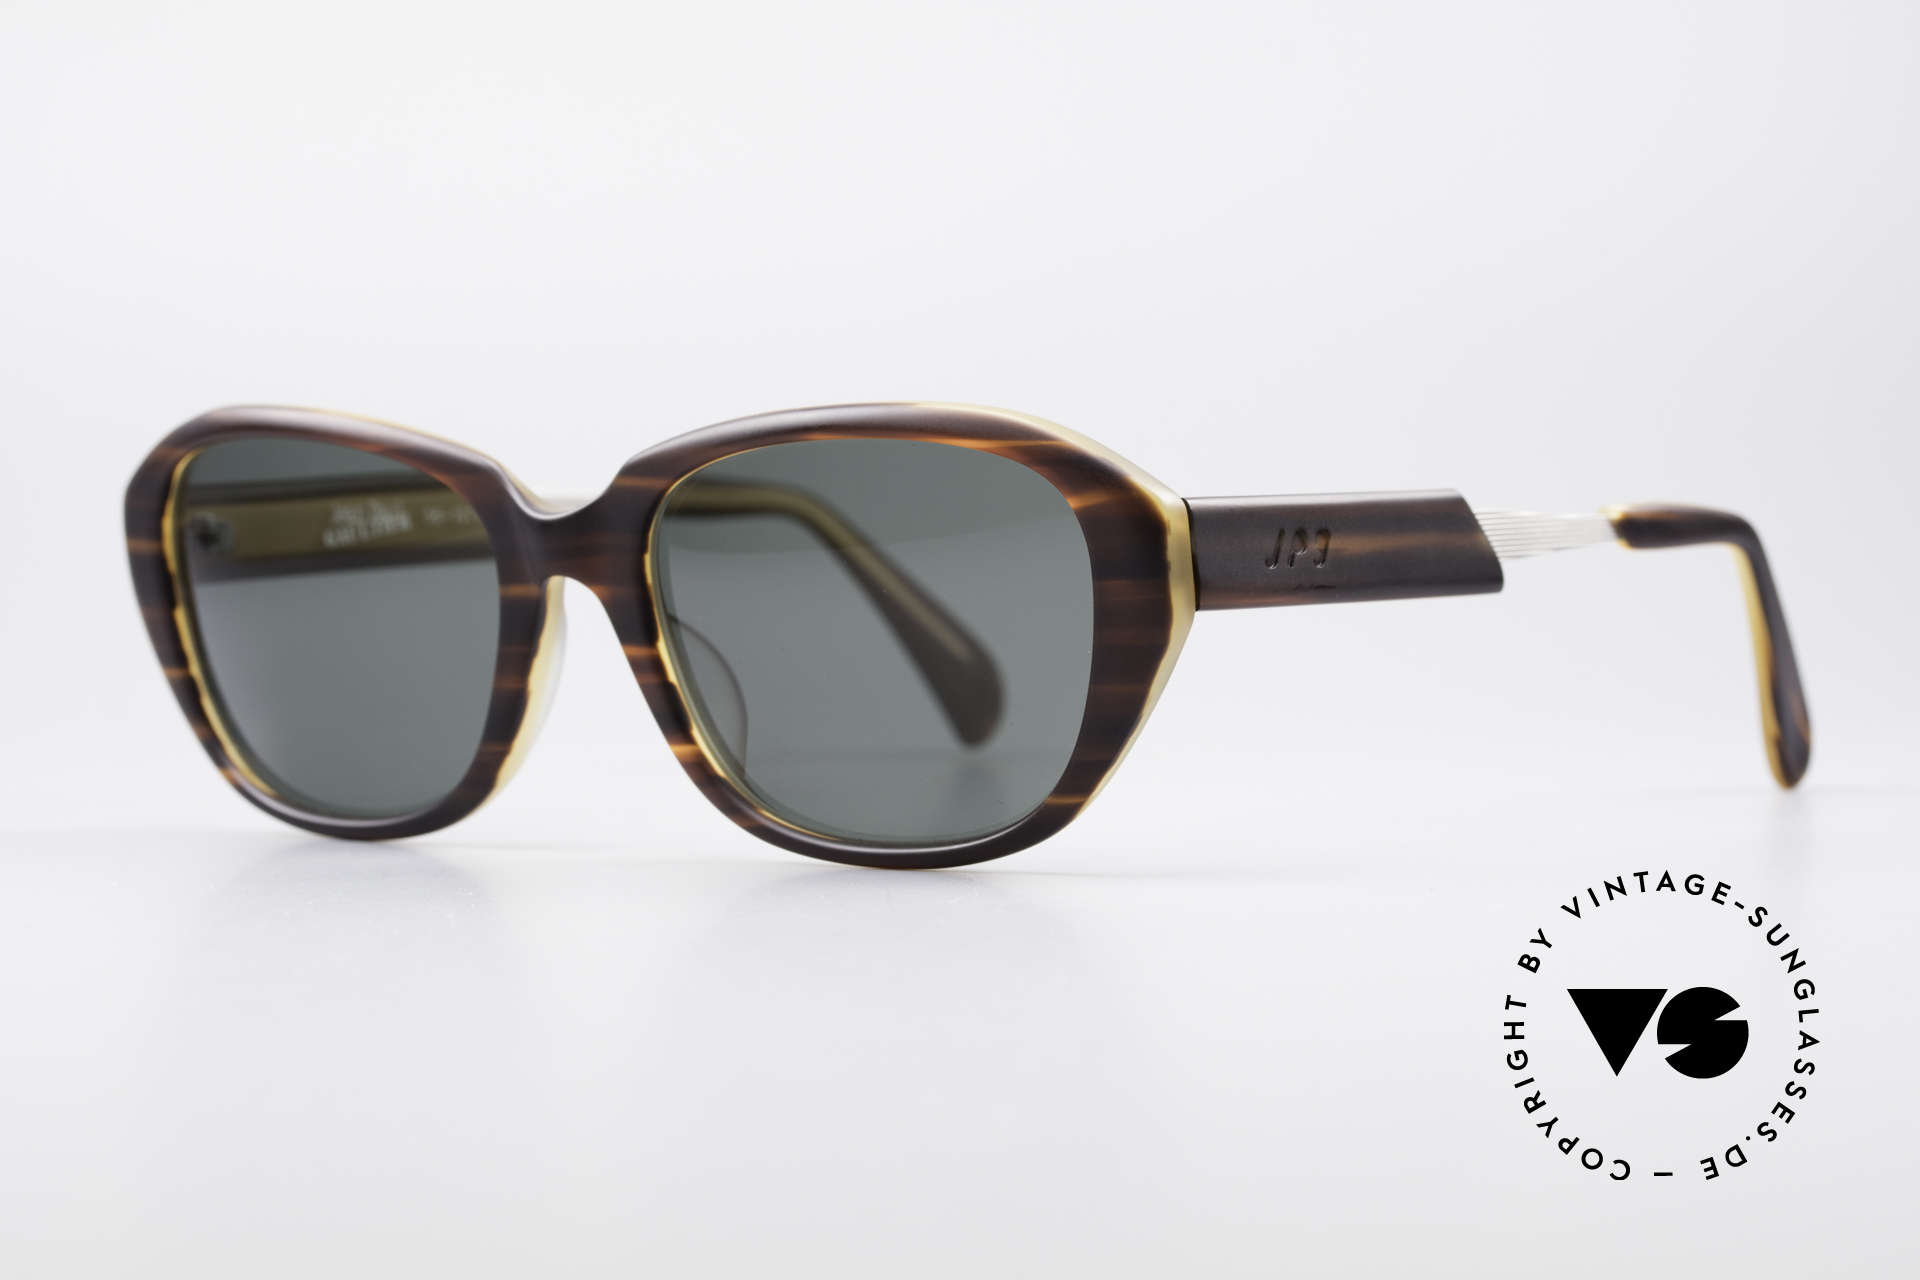 Jean Paul Gaultier 56-1072 90's Designer Sunglasses, tangible top-quality .. distinctive JPG, made in Japan, Made for Men and Women